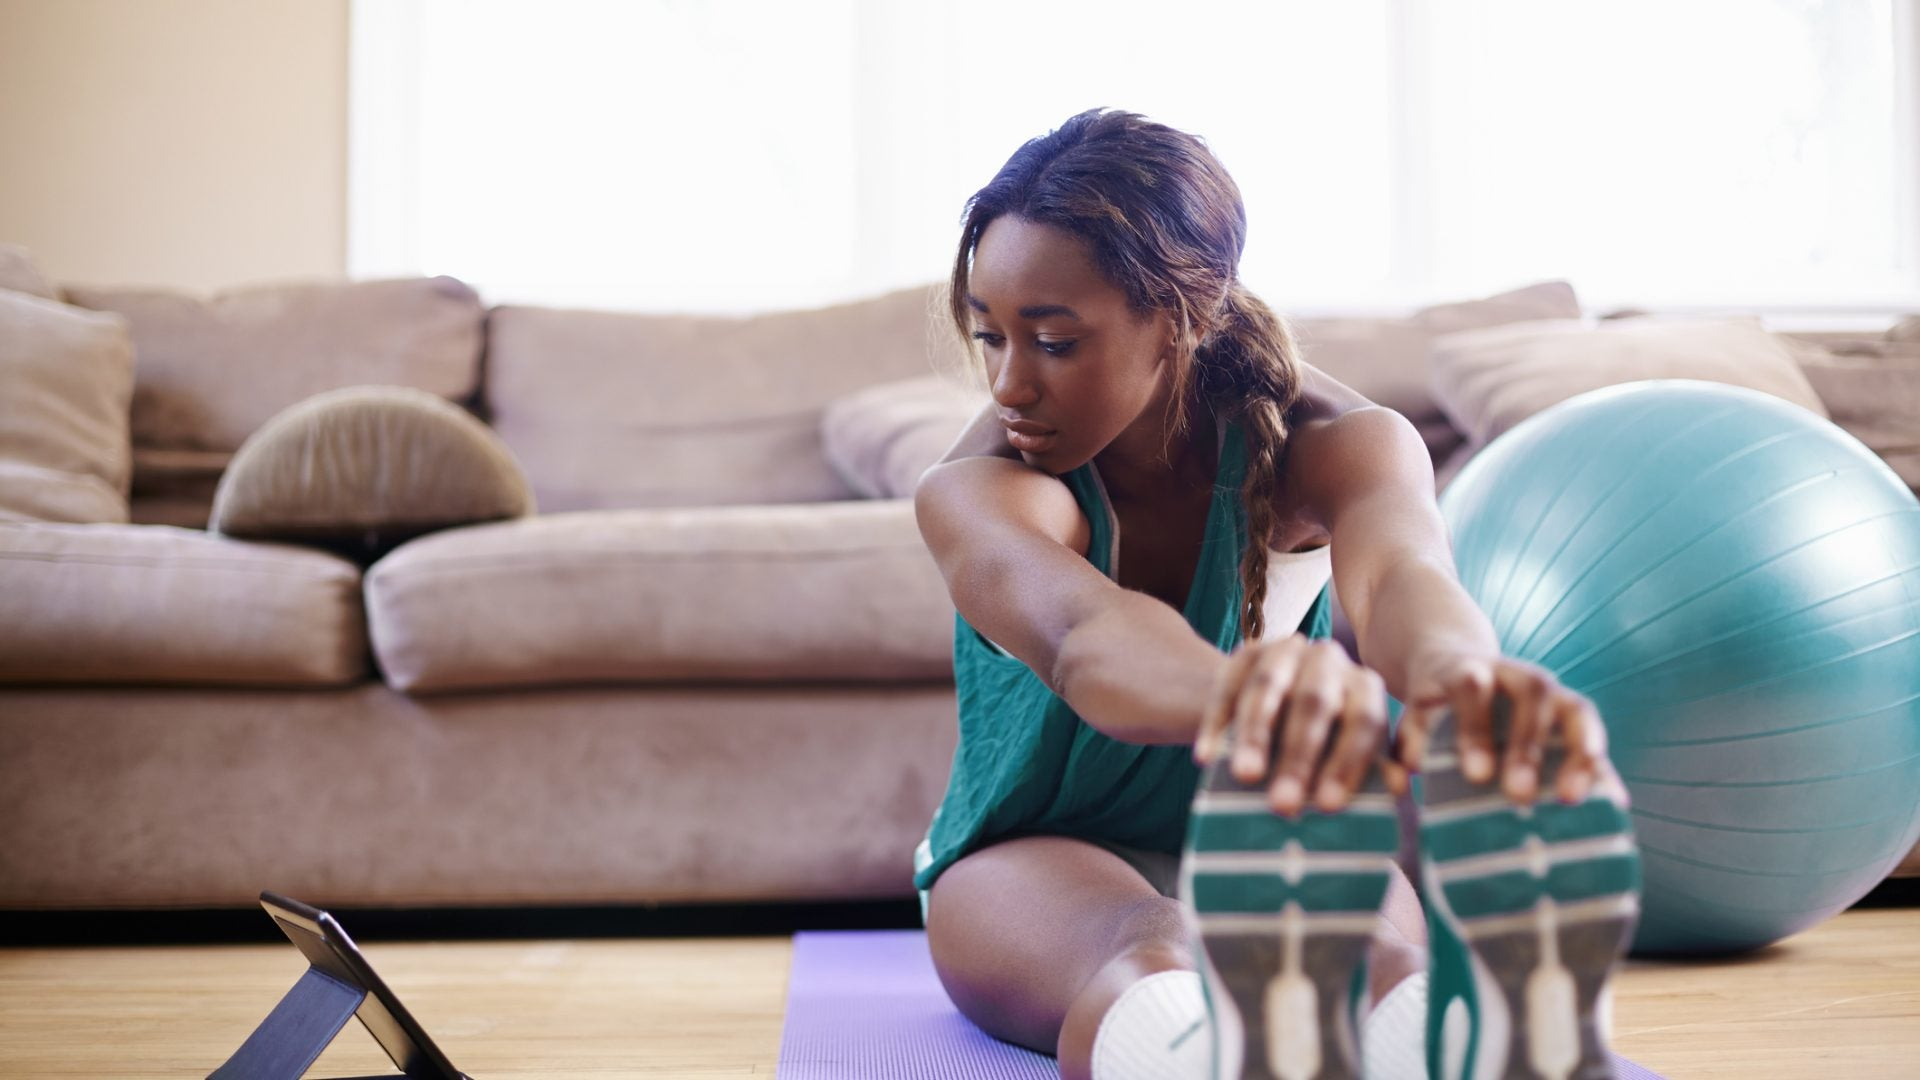 7 YouTube Workouts You Can Do This Week For Free